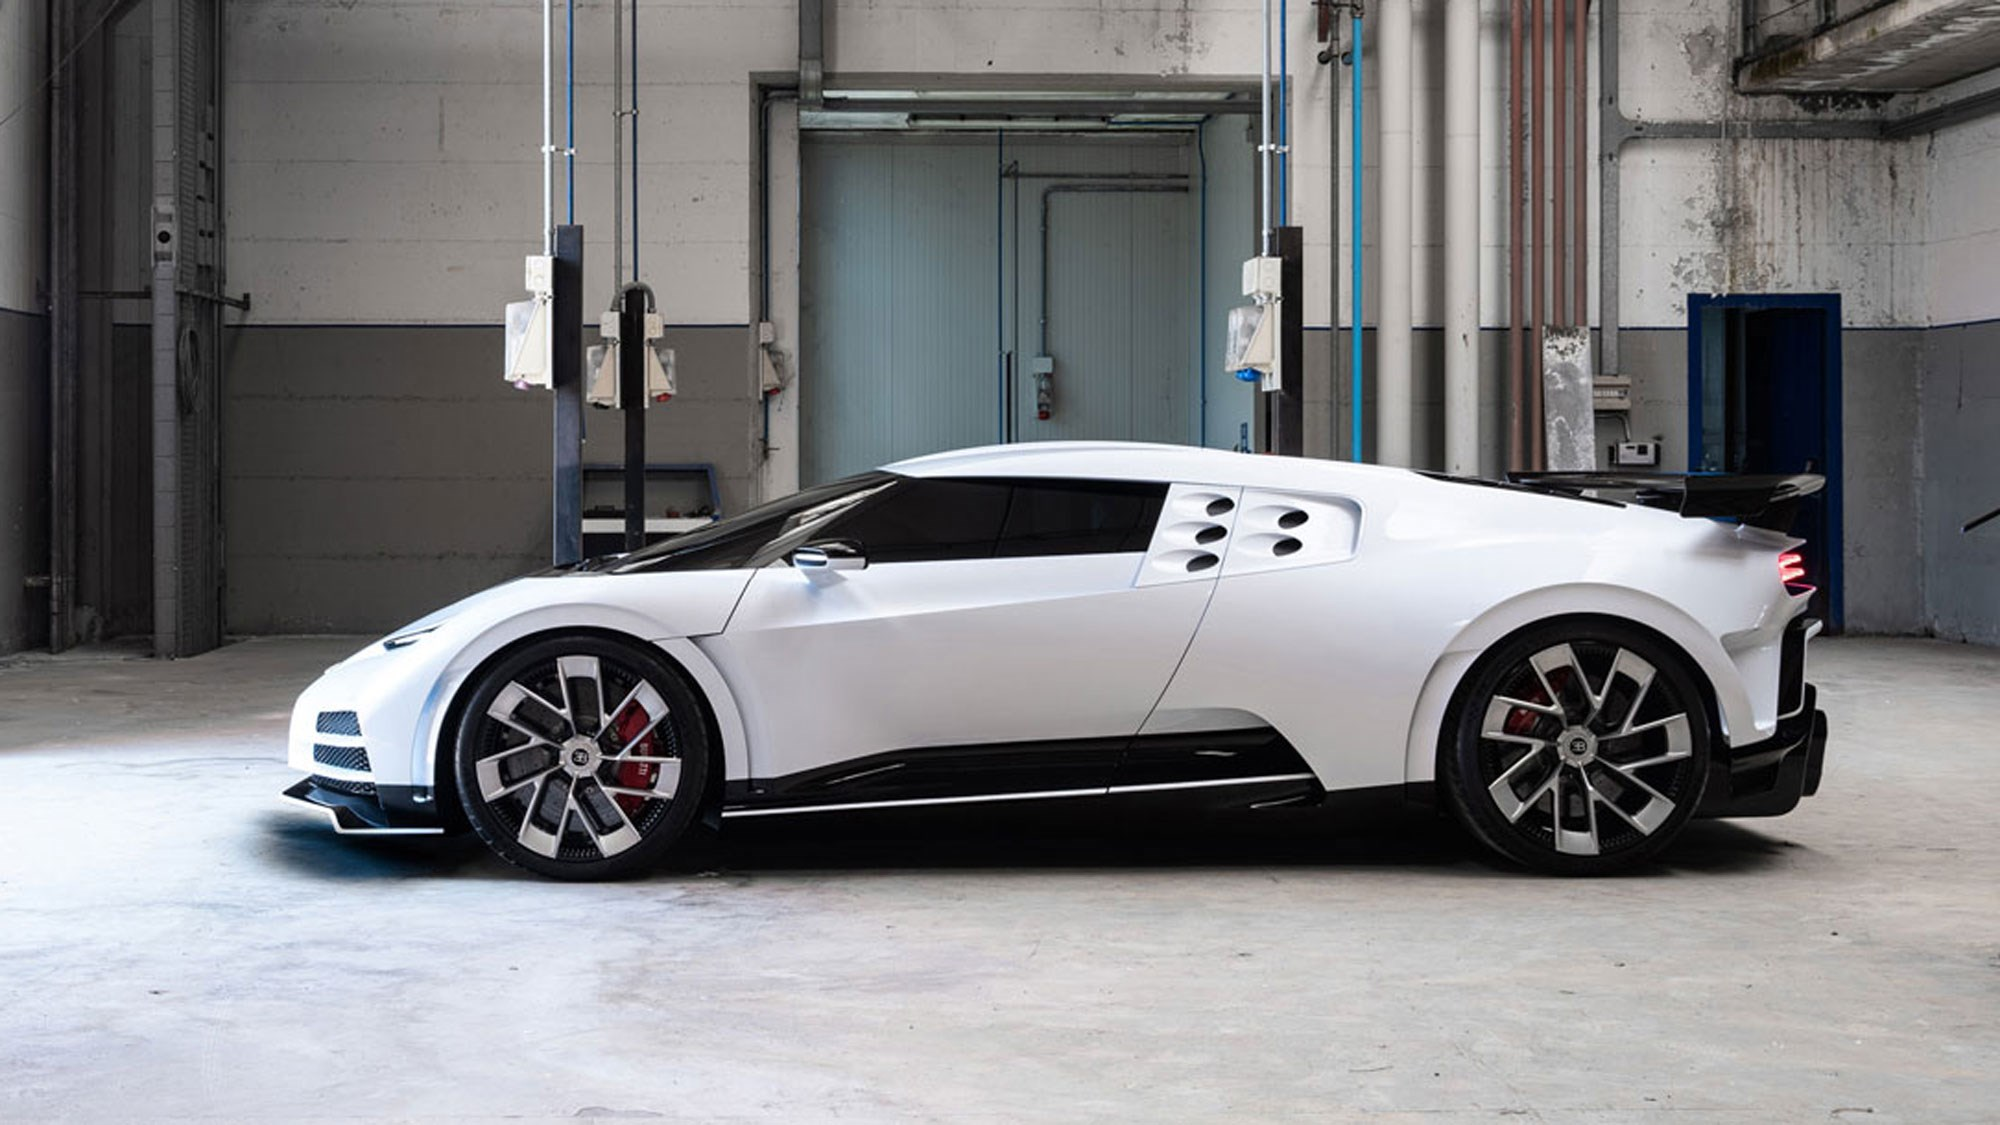 Bugatti reveals $10M Centodieci supercar with top speed of 236 miles per hour